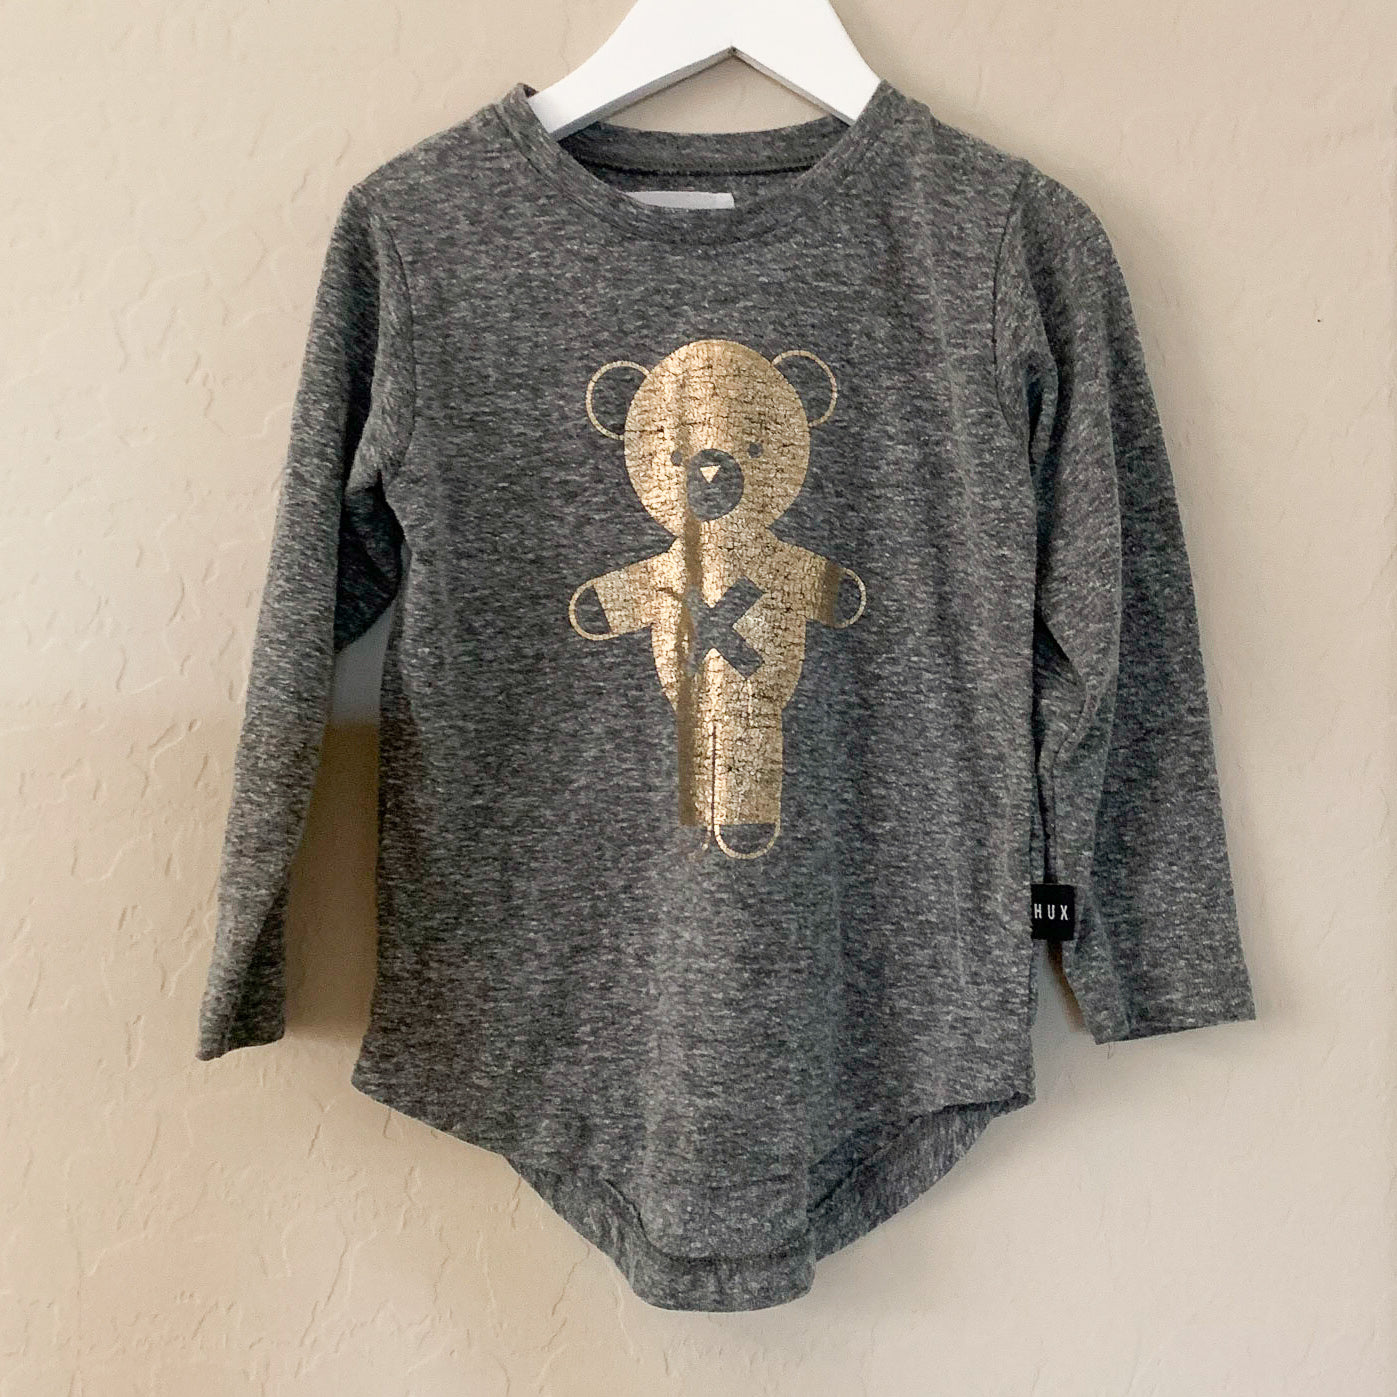 Huxbaby 3Y Soldier Bear L/S Top Charcoal Slub/Gold